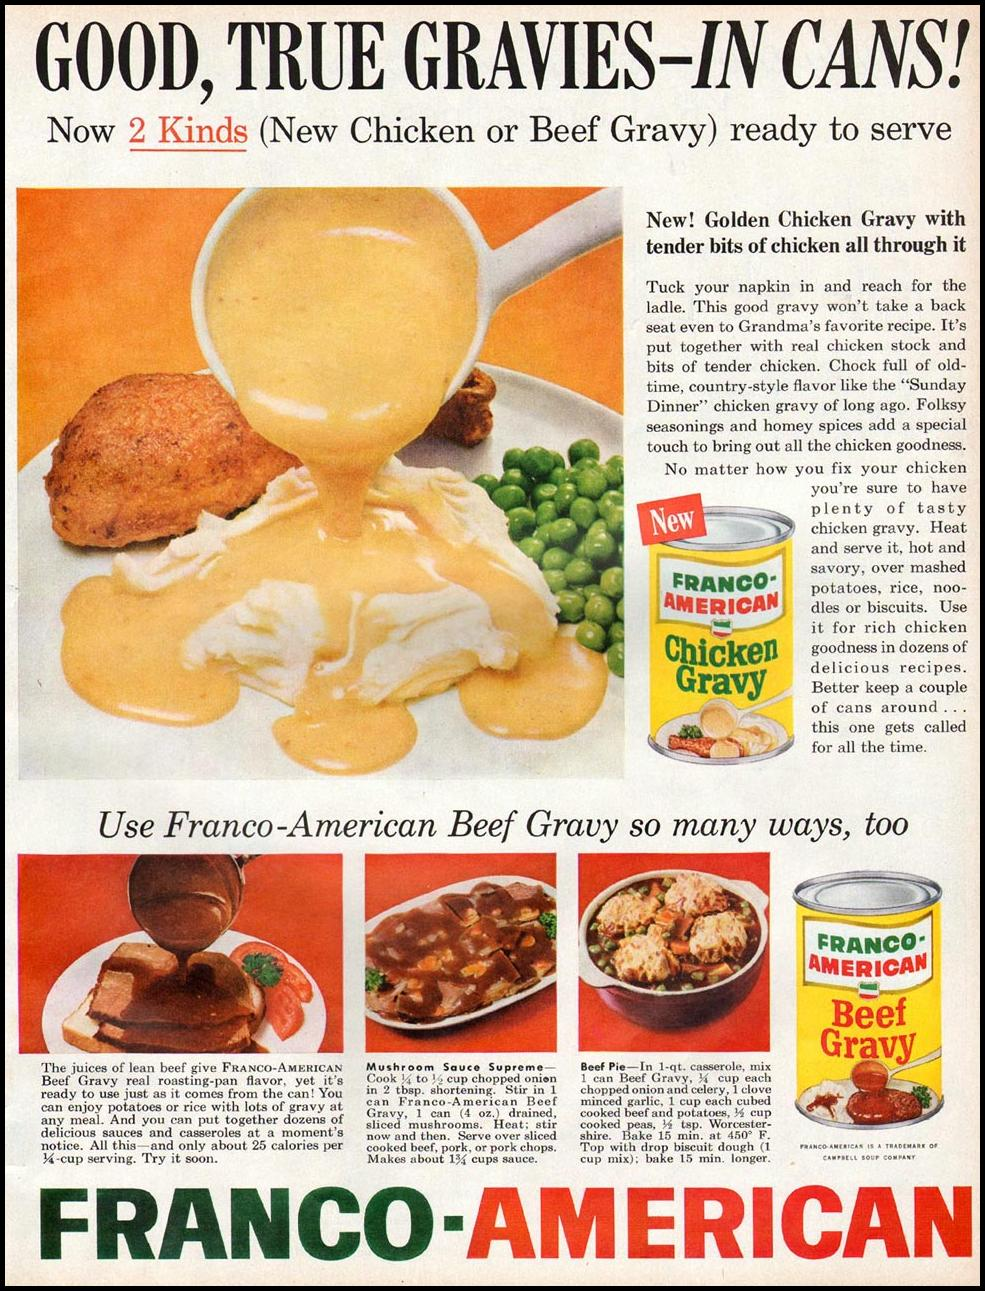 FRANCO-AMERICAN GRAVIES BETTER HOMES AND GARDENS 03/01/1960